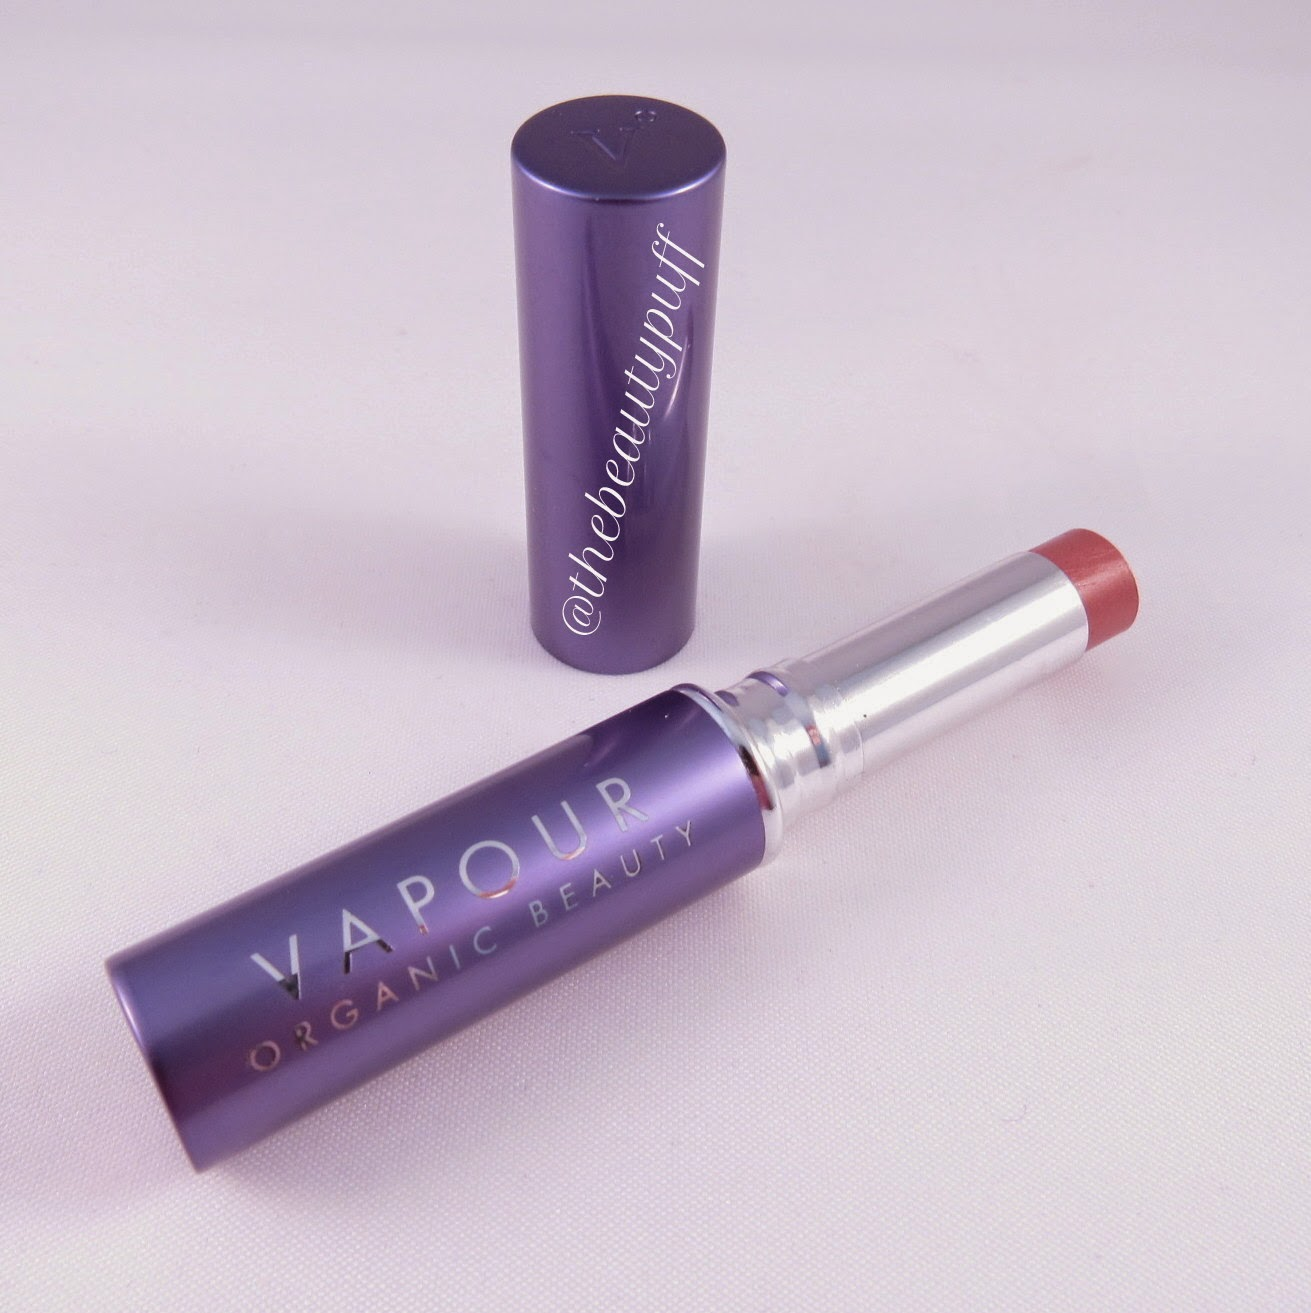 vapour beauty siren lipstick desire - the beauty puff